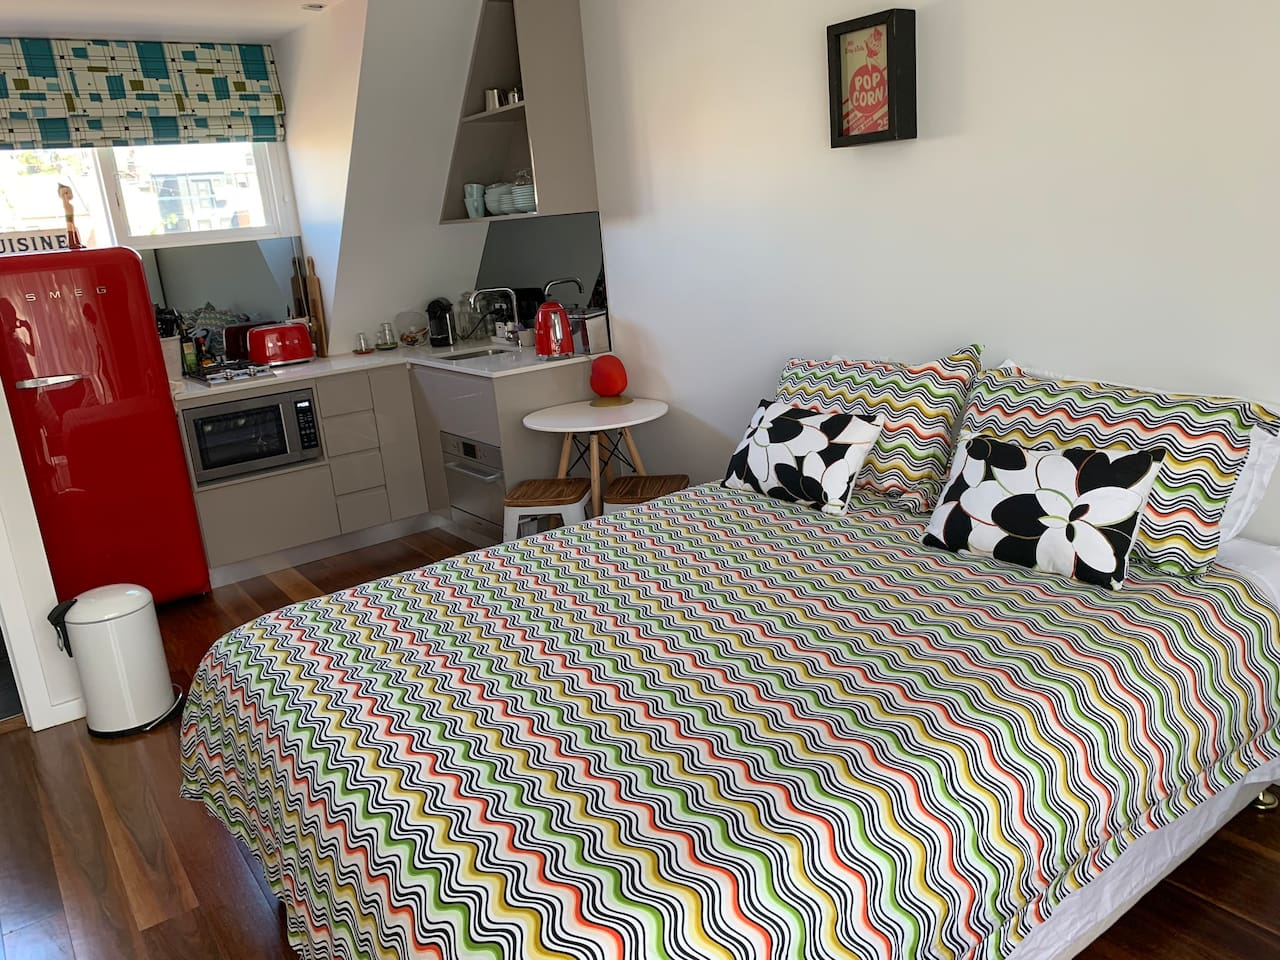 New Retro Studio Apartment in the Heart of Surry Hills